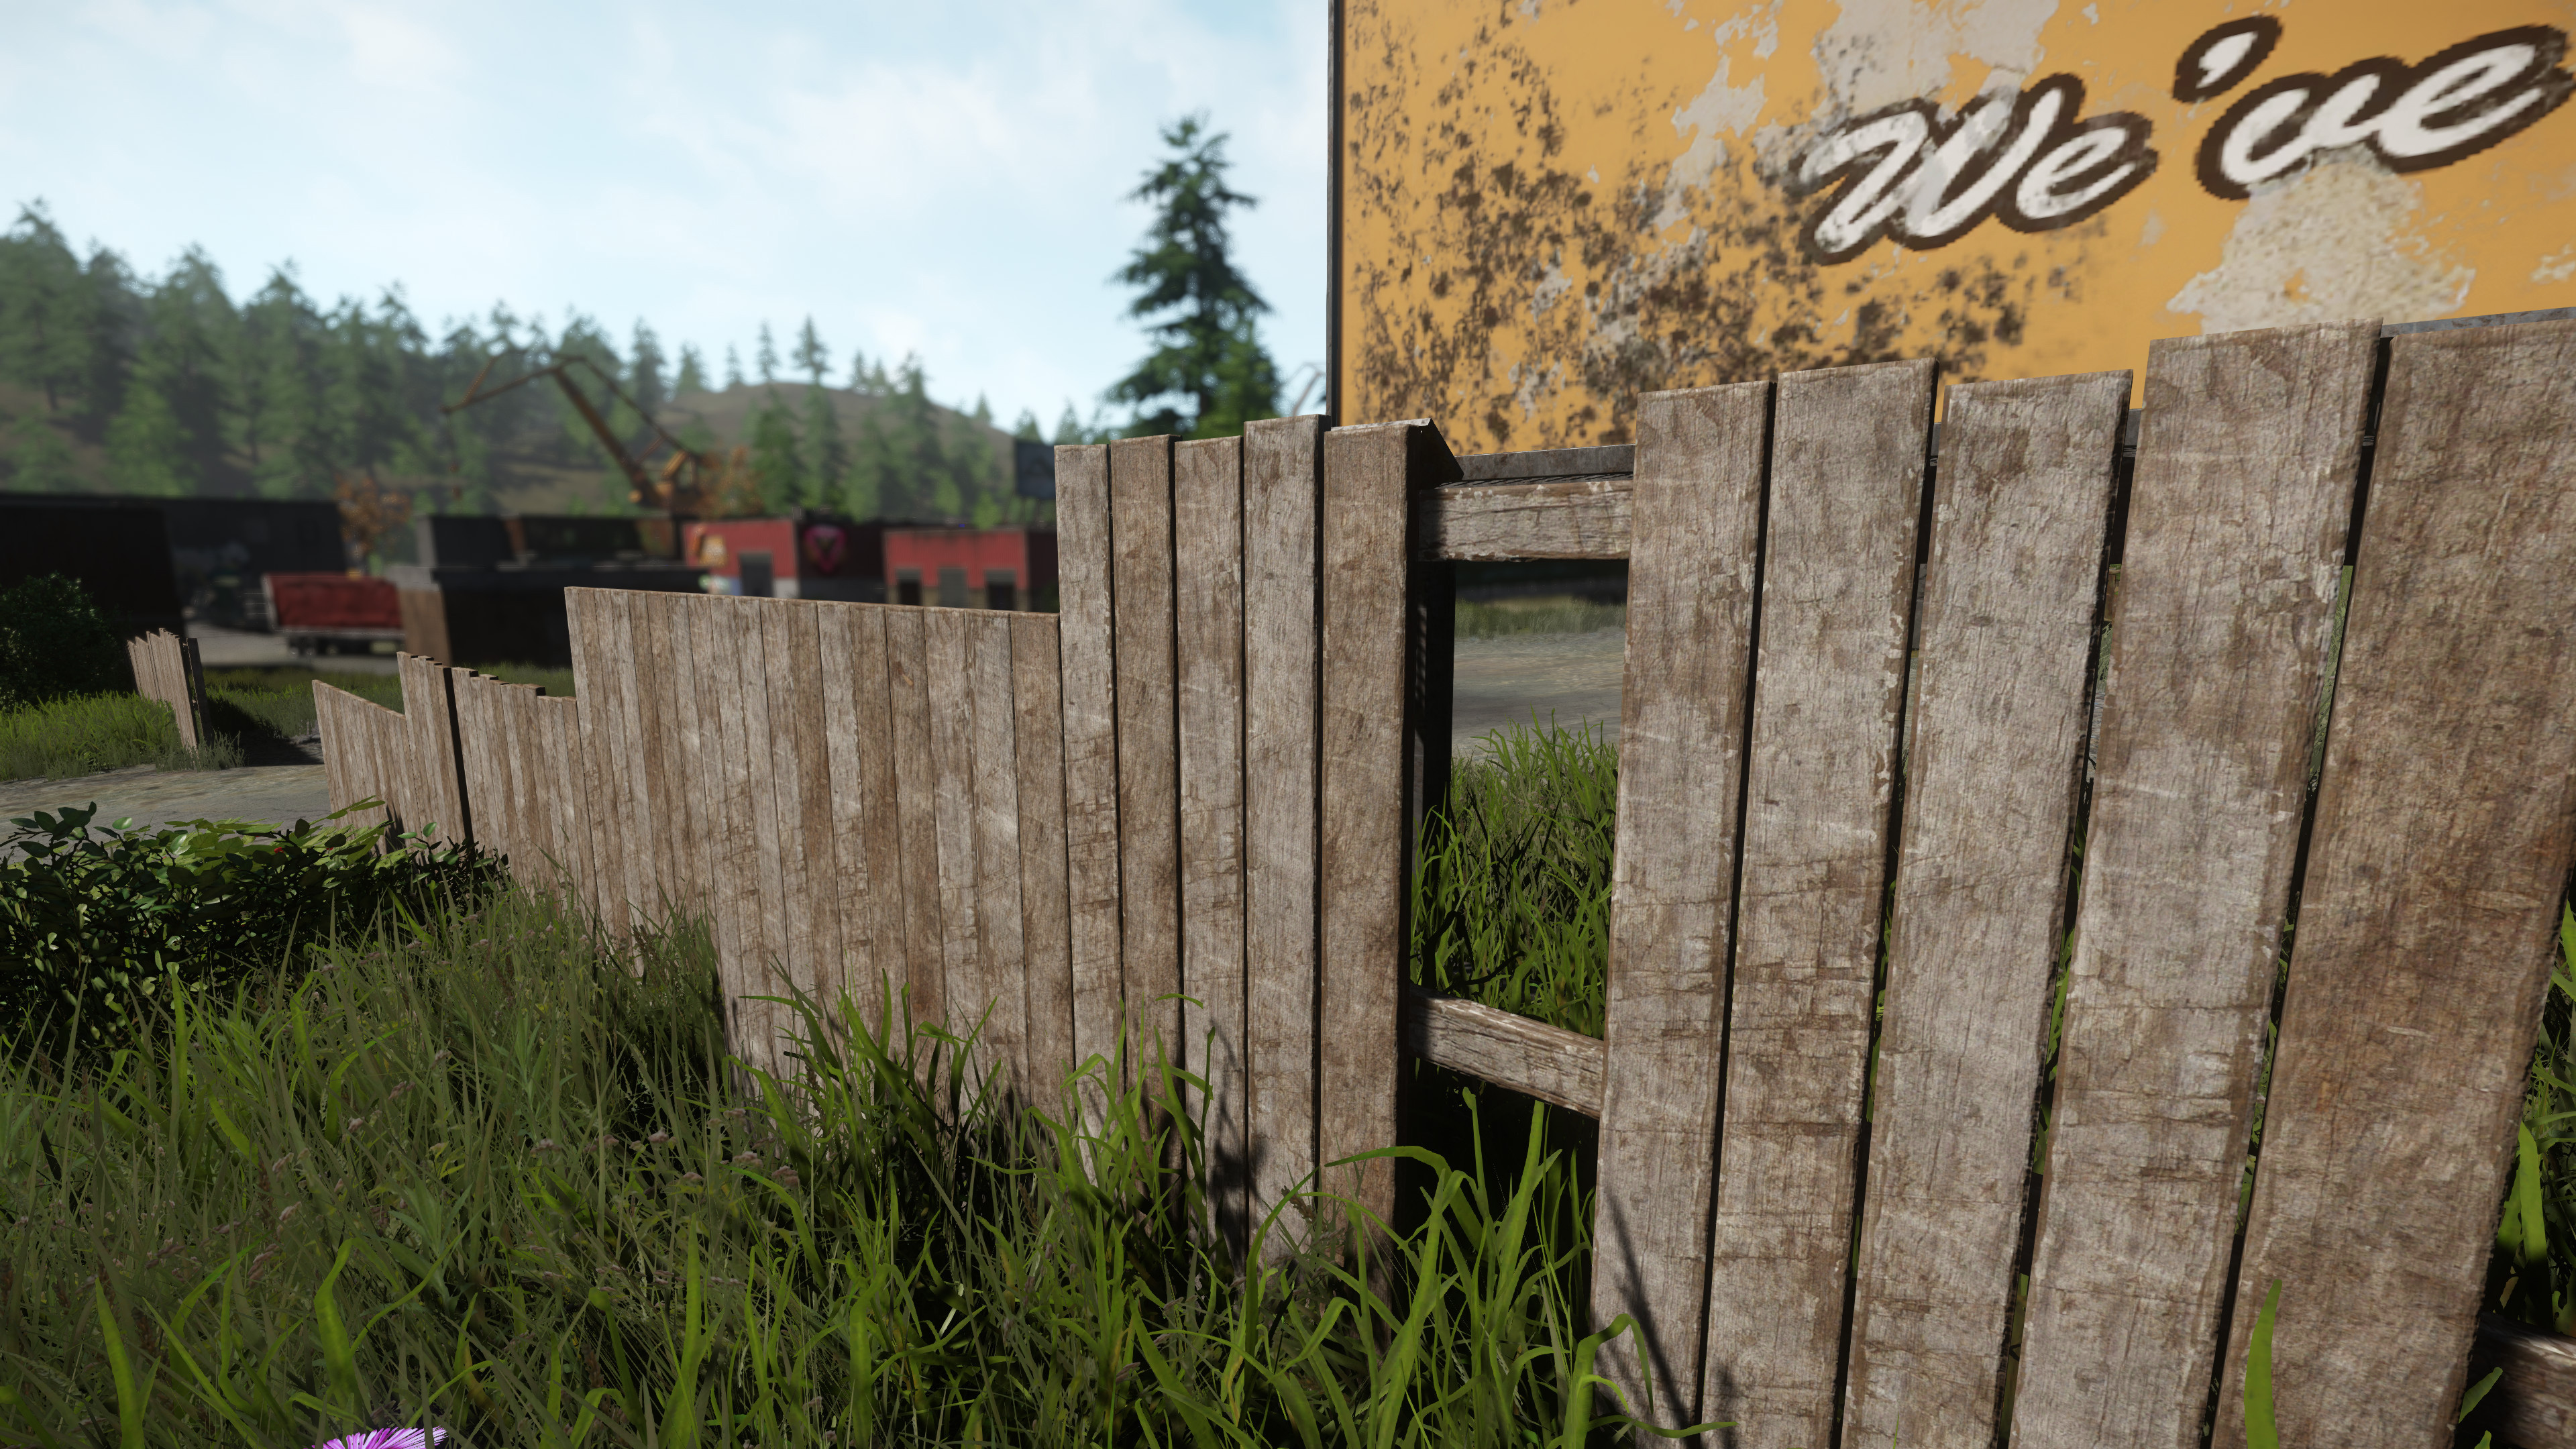 High Wooden Fence to section off the junkyard area